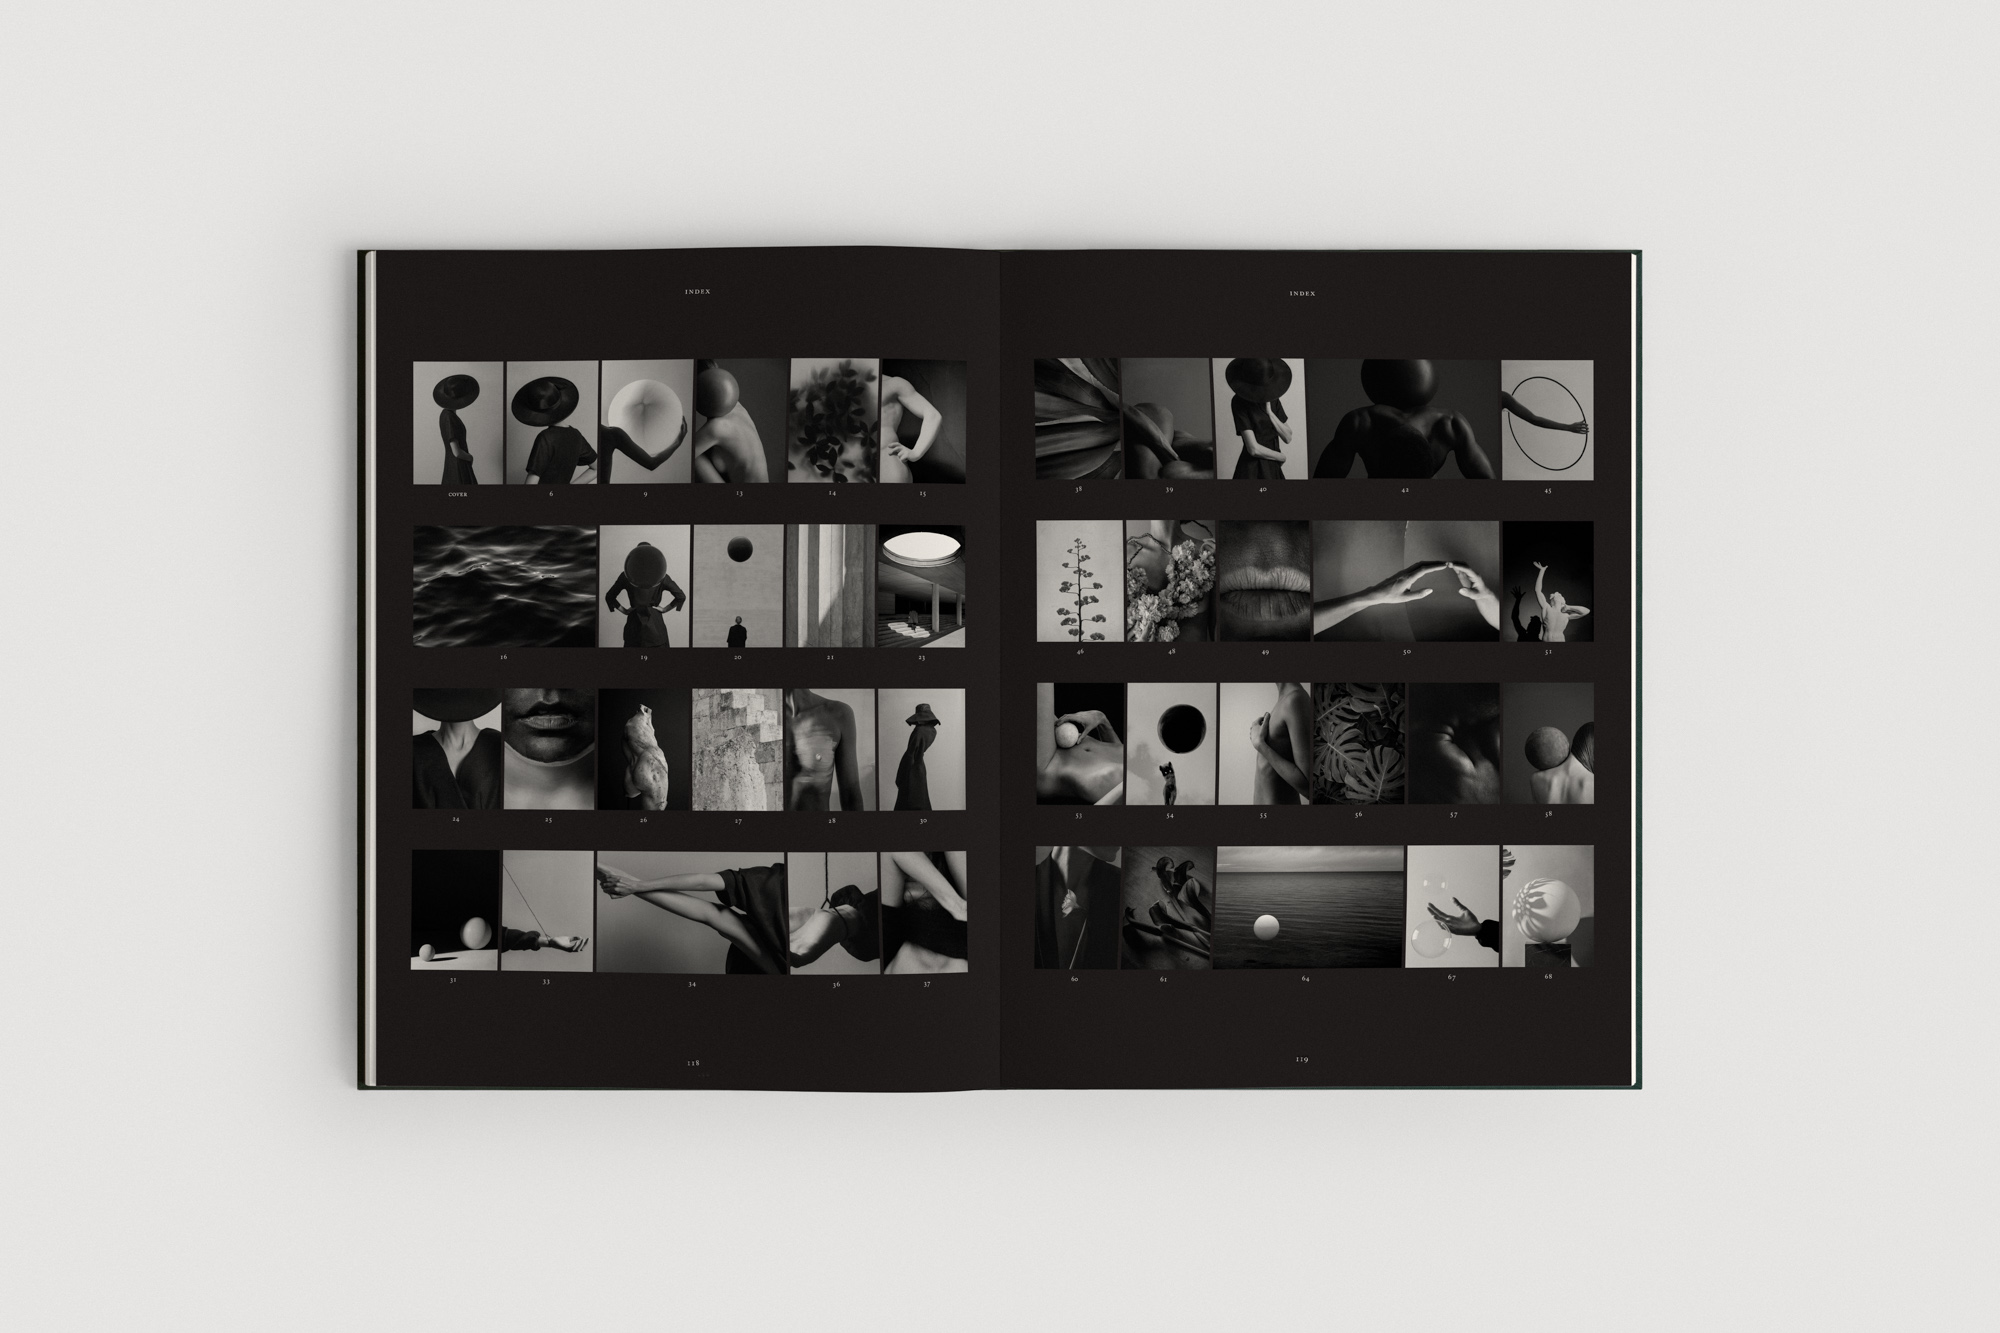 Jonas-Bjerre-Poulsen-The-Reinvention-of-Forms-Book-Packshots-Web-12